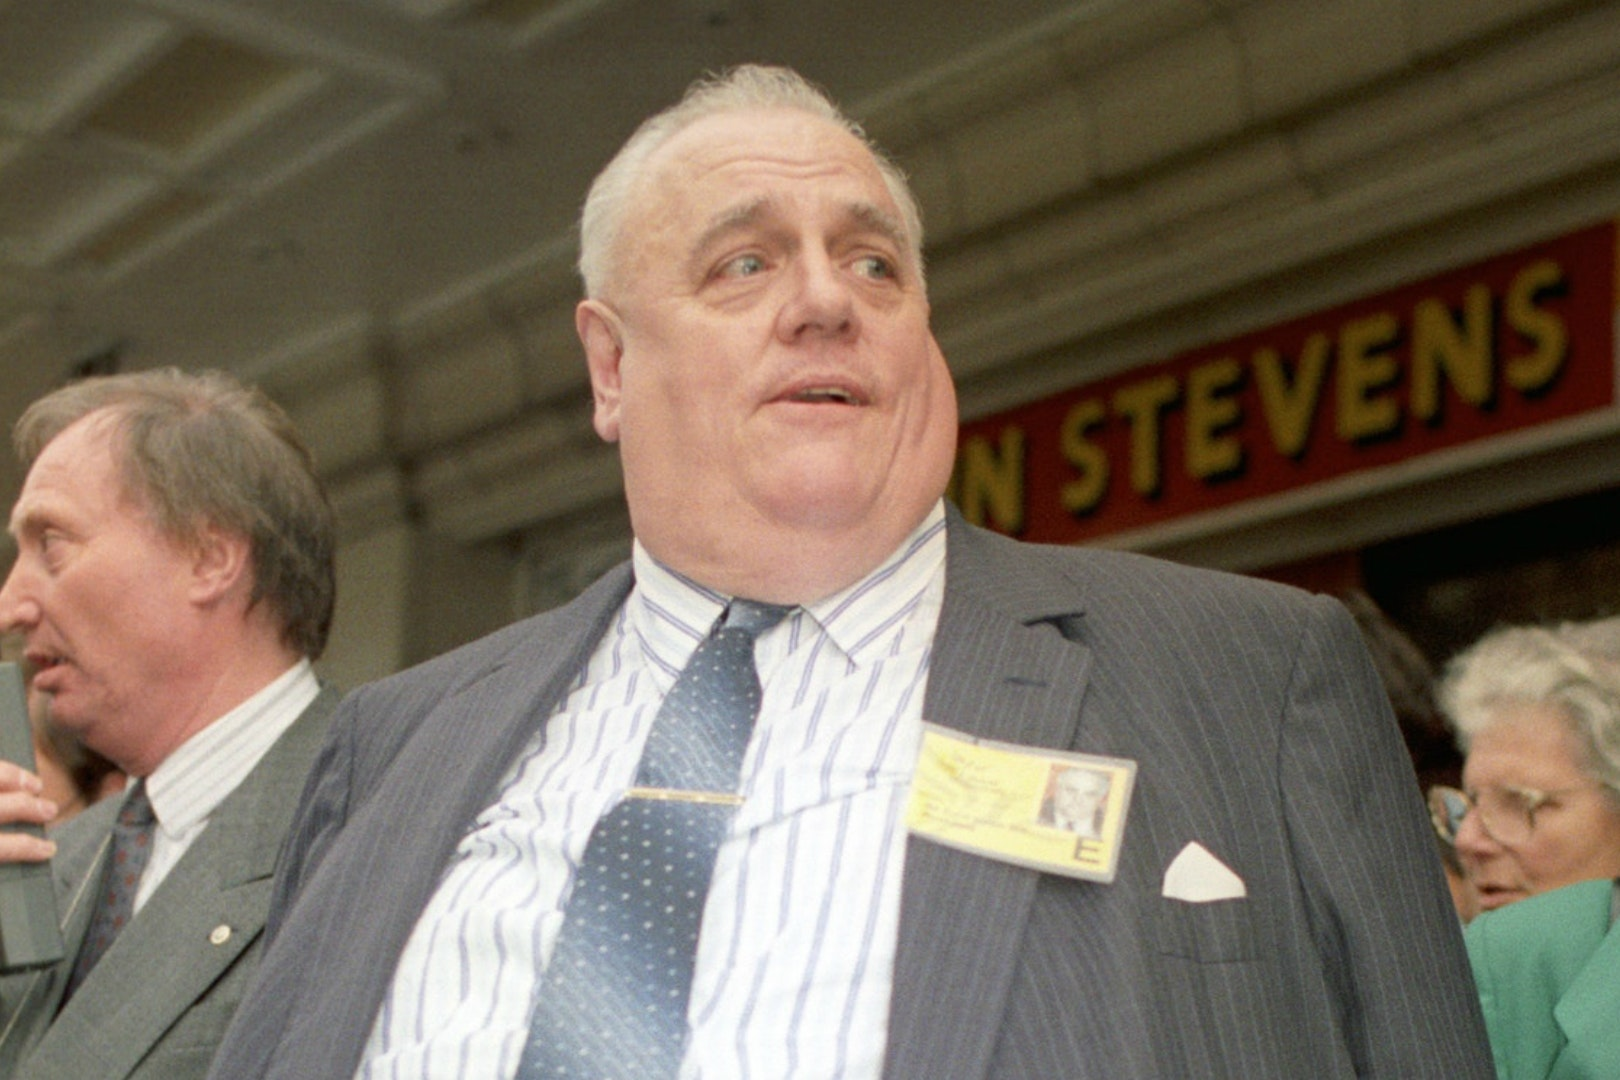 Cyril Smith confessed to David Steel in 1979 to spanking boys